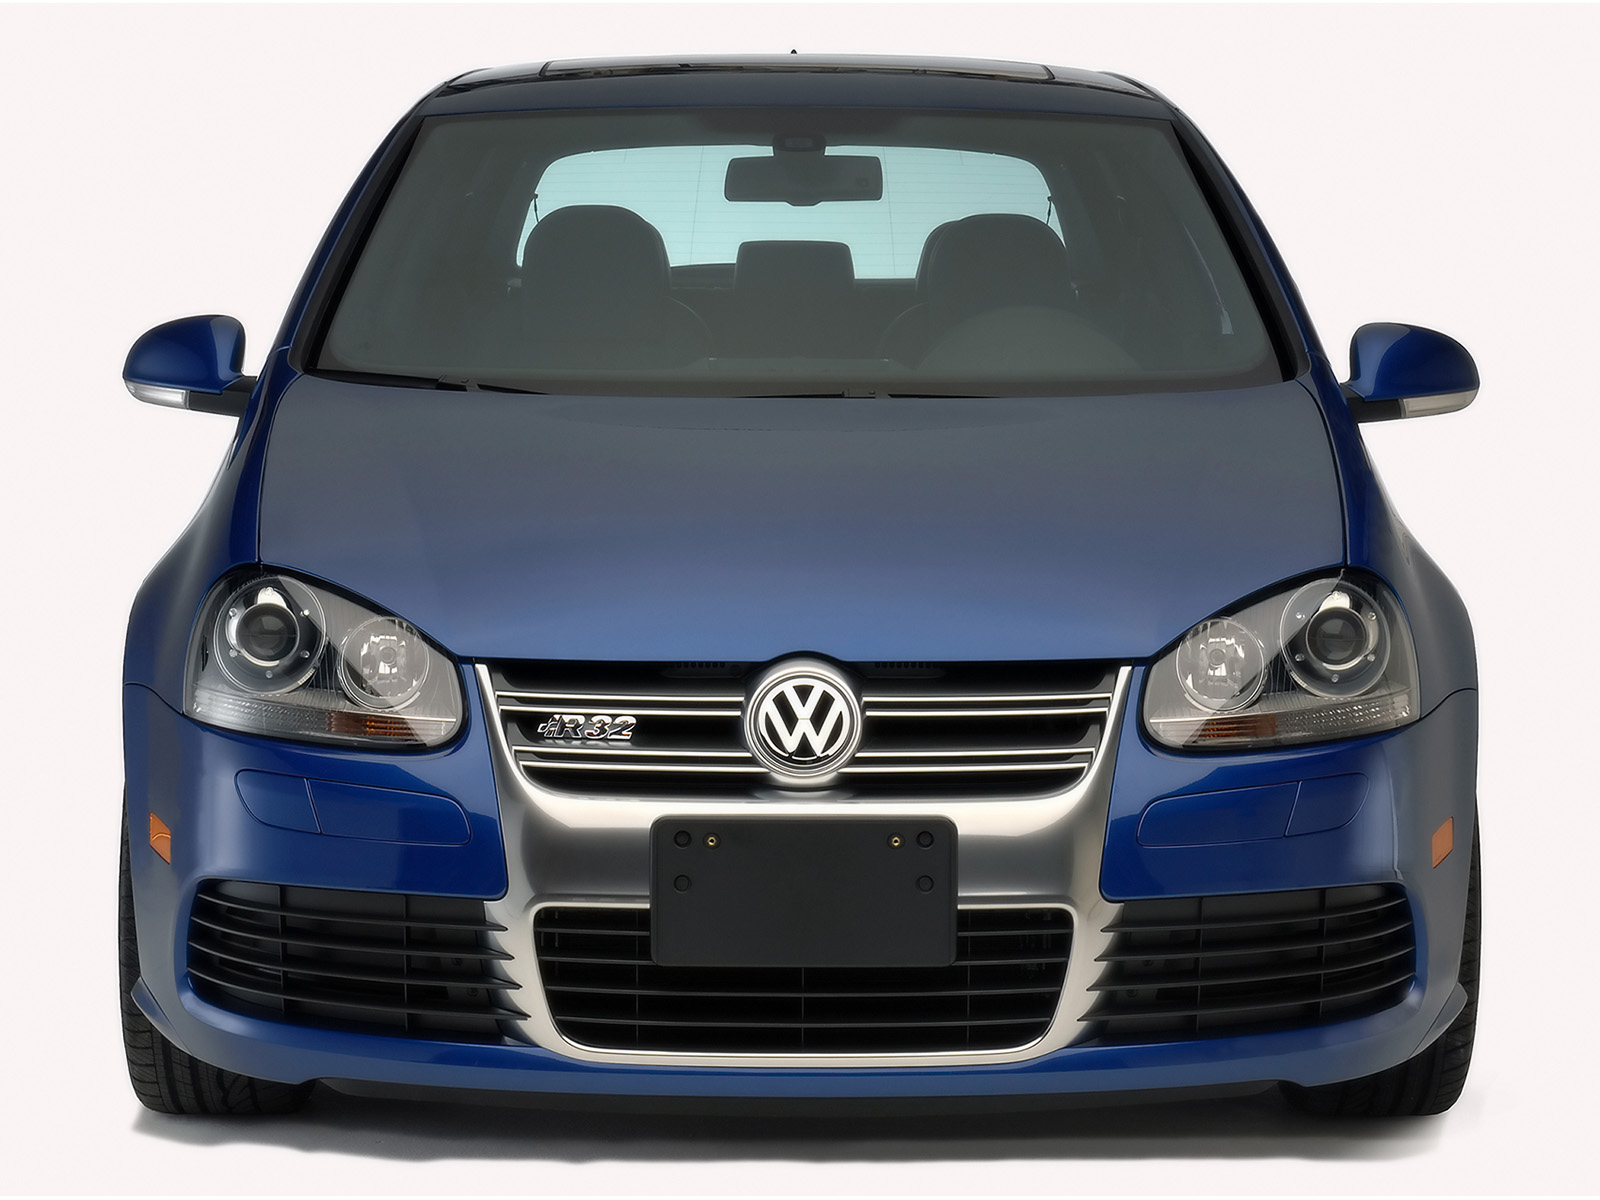 Volkswagen R32 photo 42126